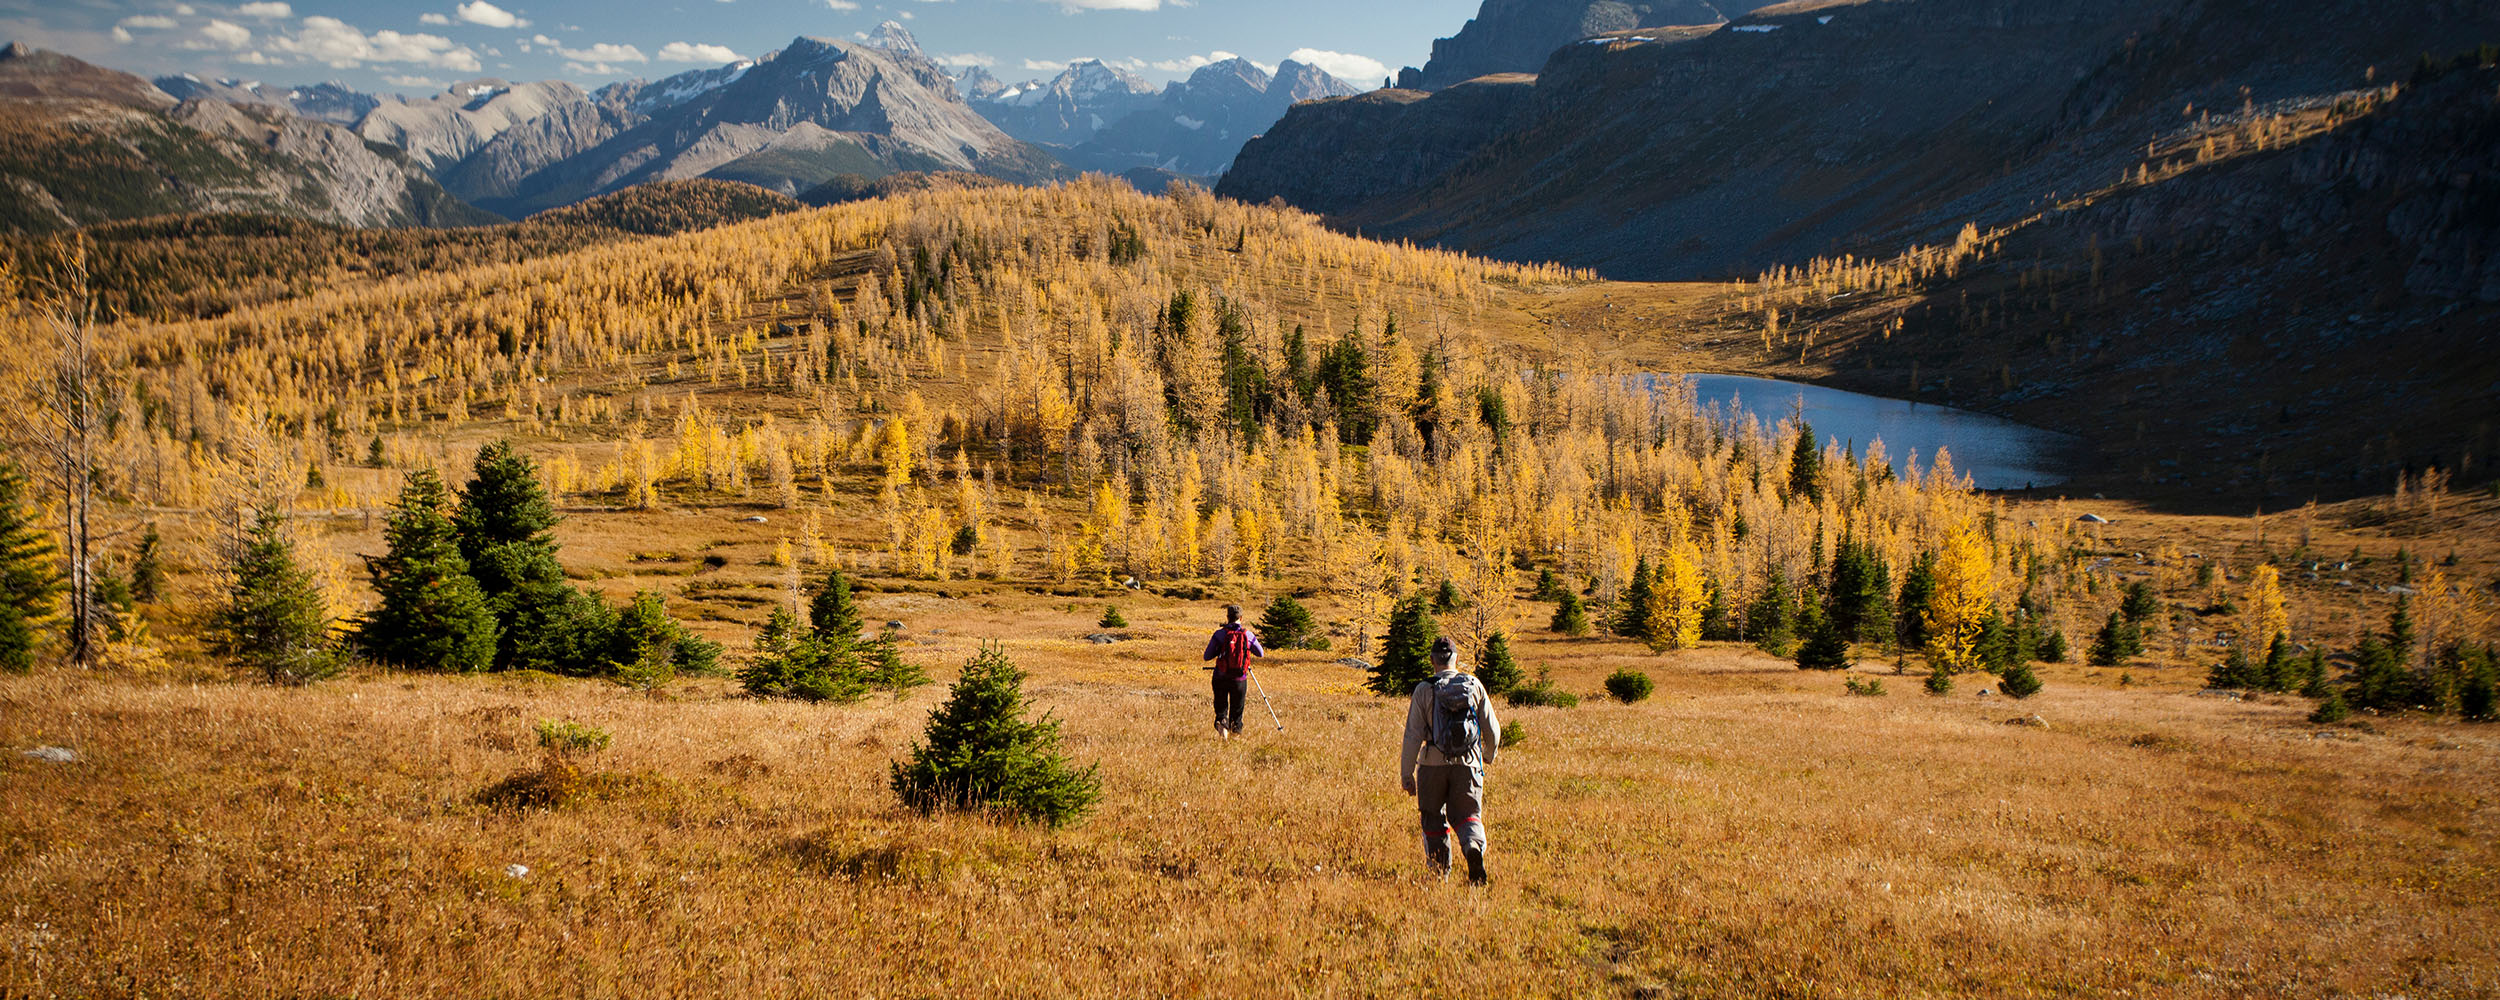 fall hiking near lake louise